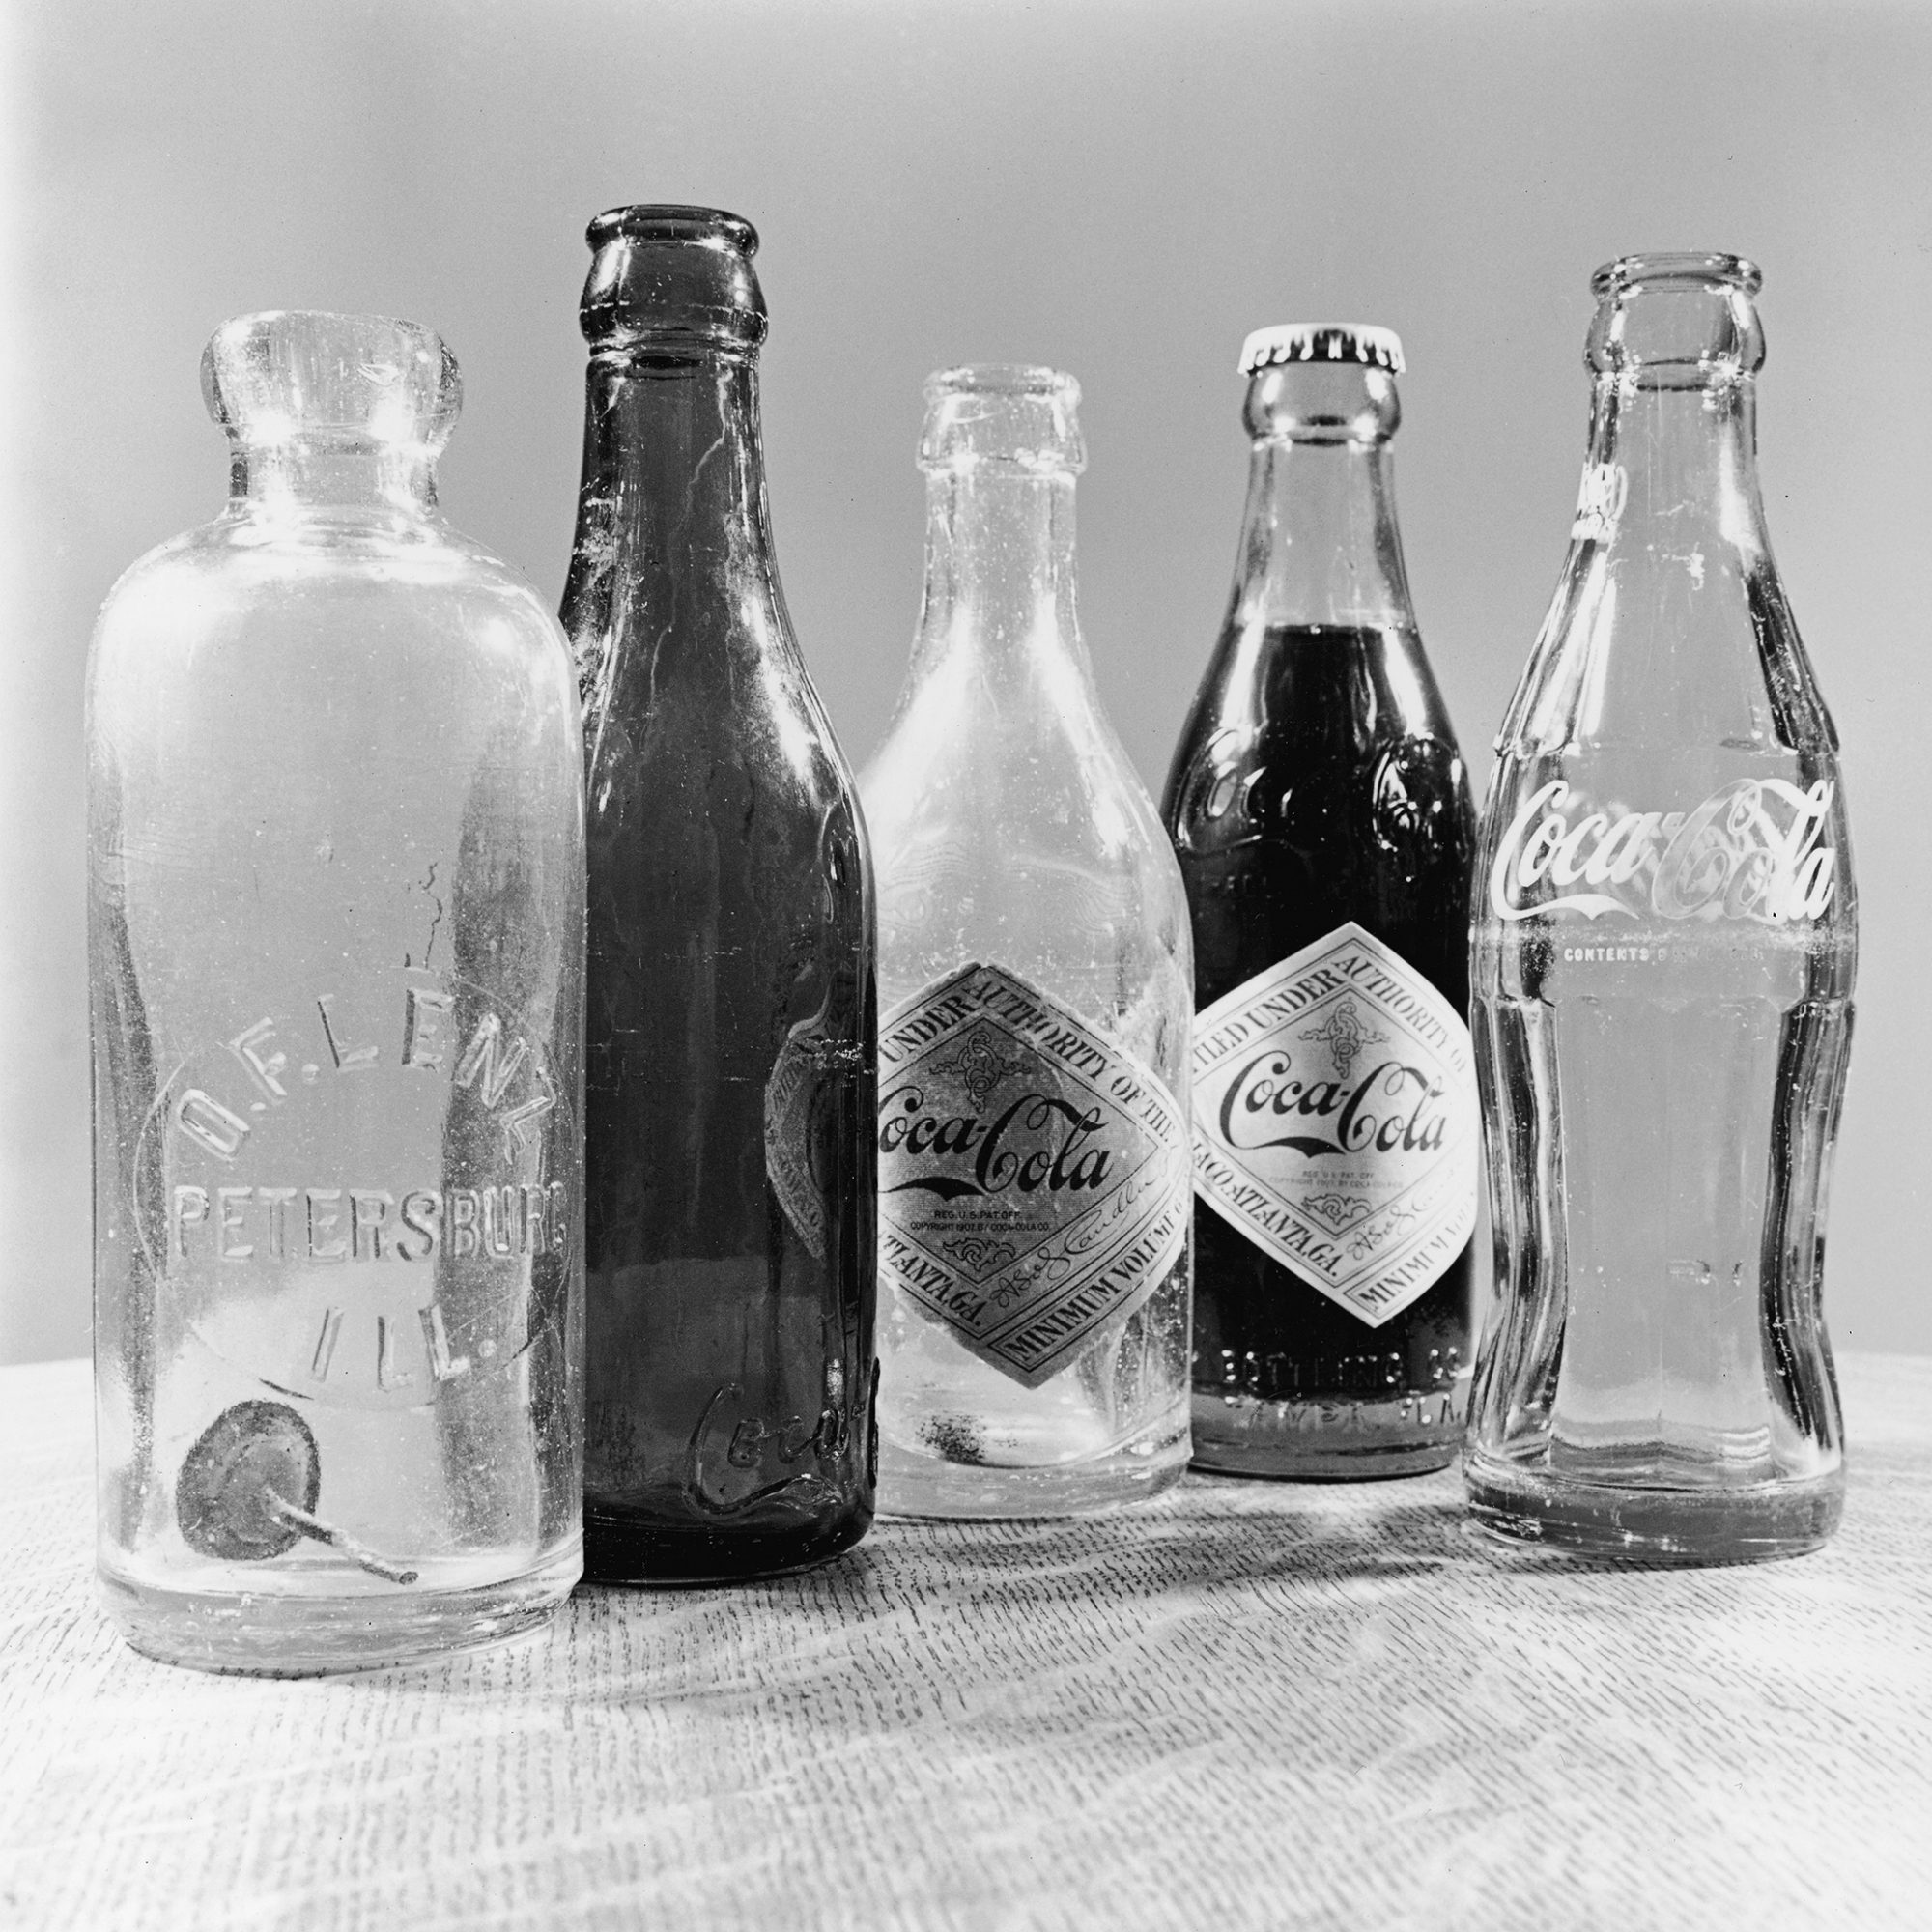 FWX HOW THE COKE BOTTLE BECAME SO ICONIC